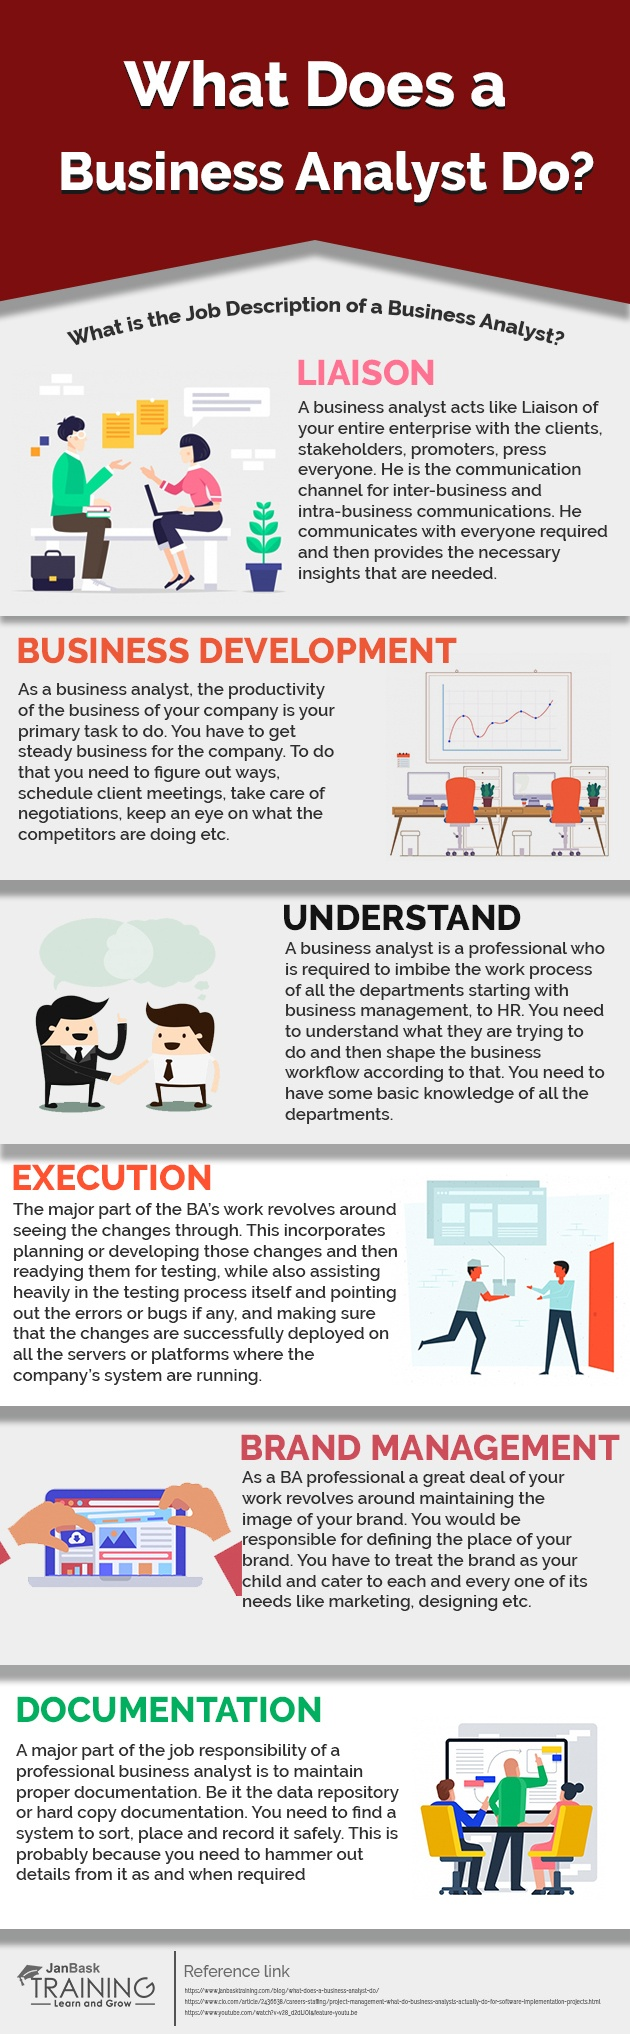 What Does A Business Analyst Do? Infographic